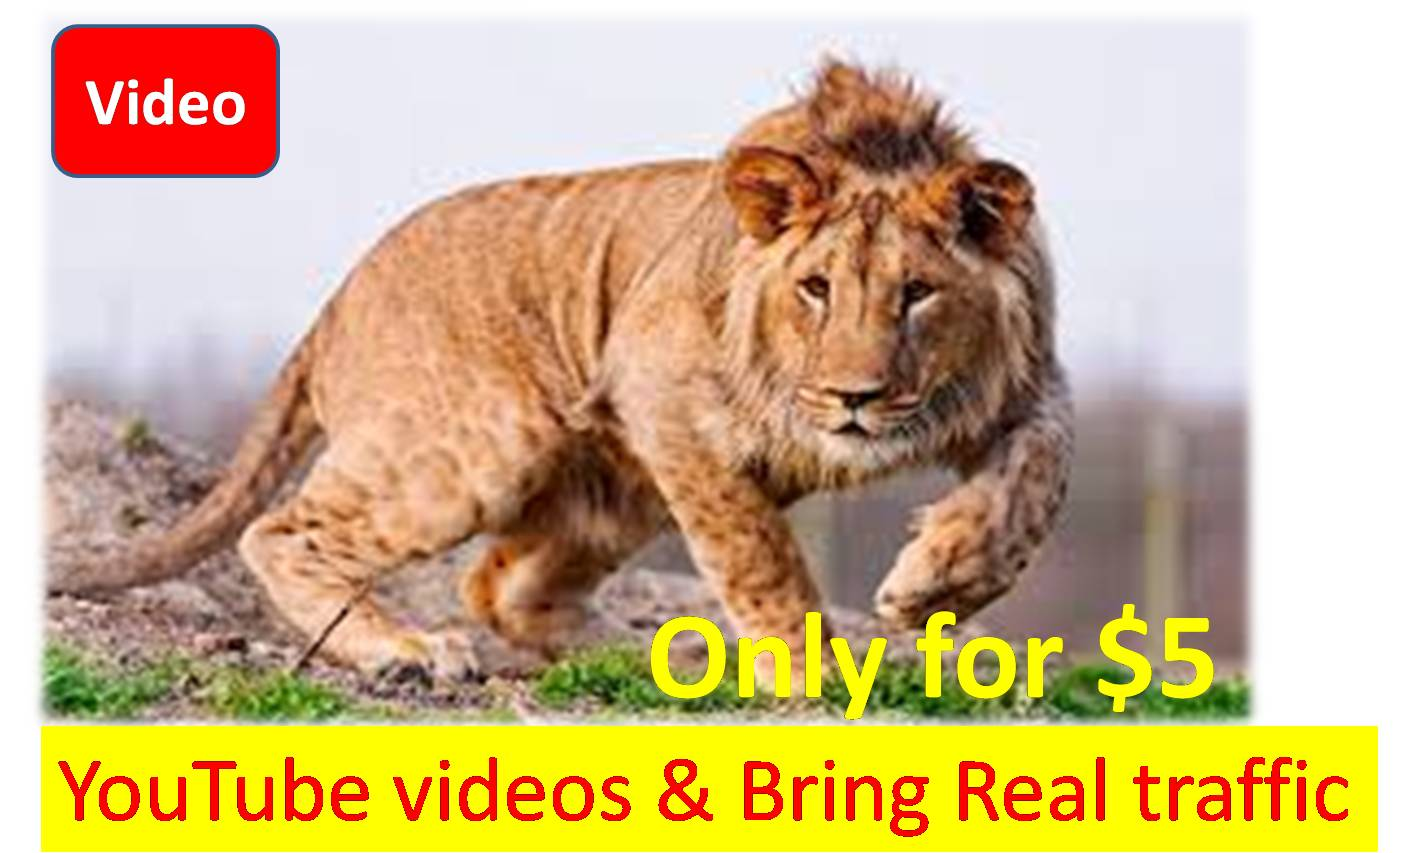 Promote your  YouTube videos and Bring Real traffic